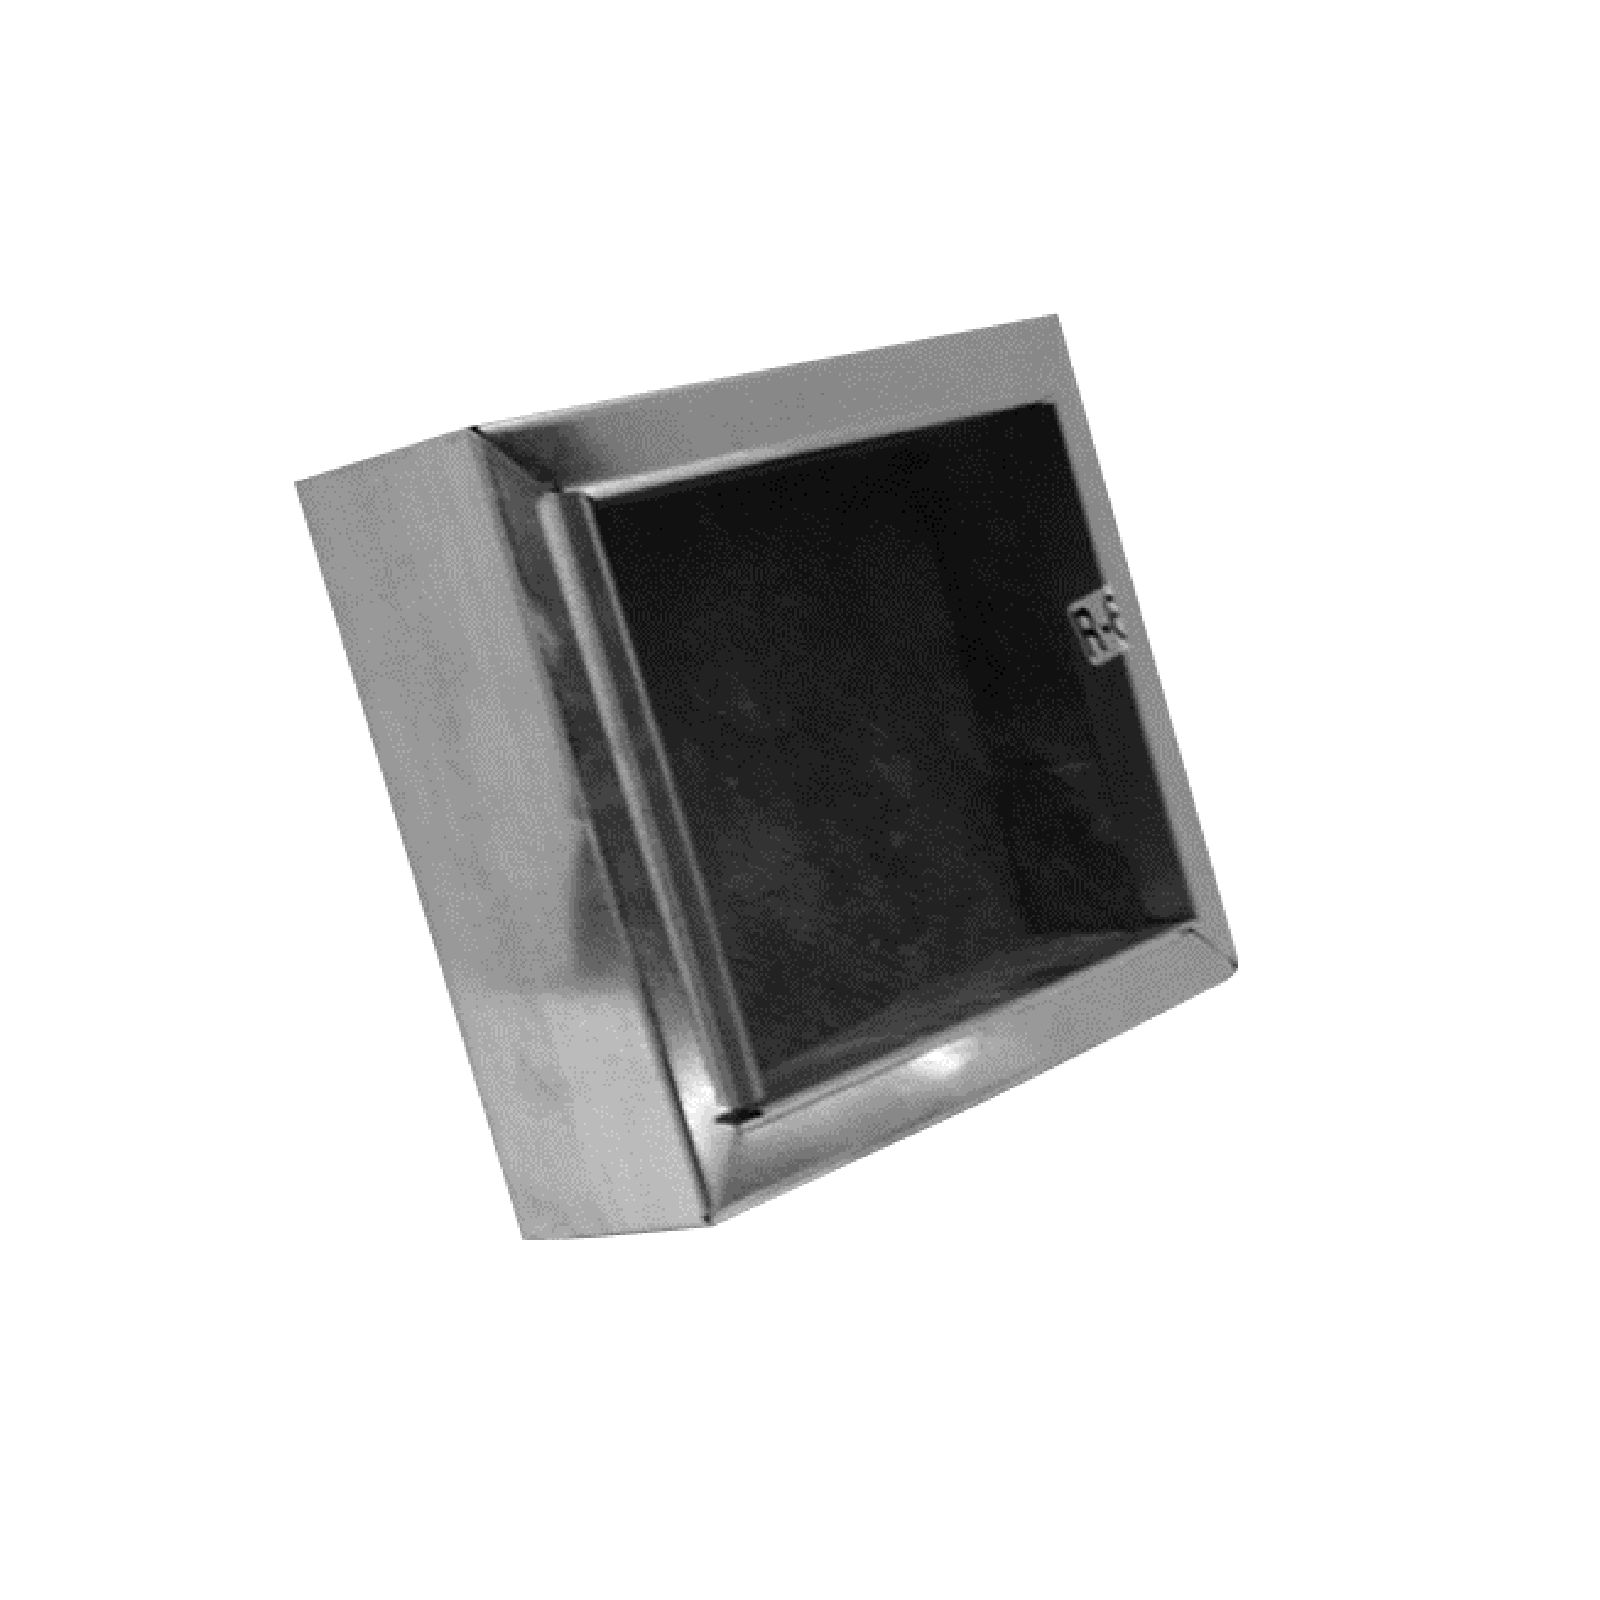 "Mitchell Metal 40R61406 - 14"" X 6"" Ductboard Register Box - R6 Ductboard Applications"